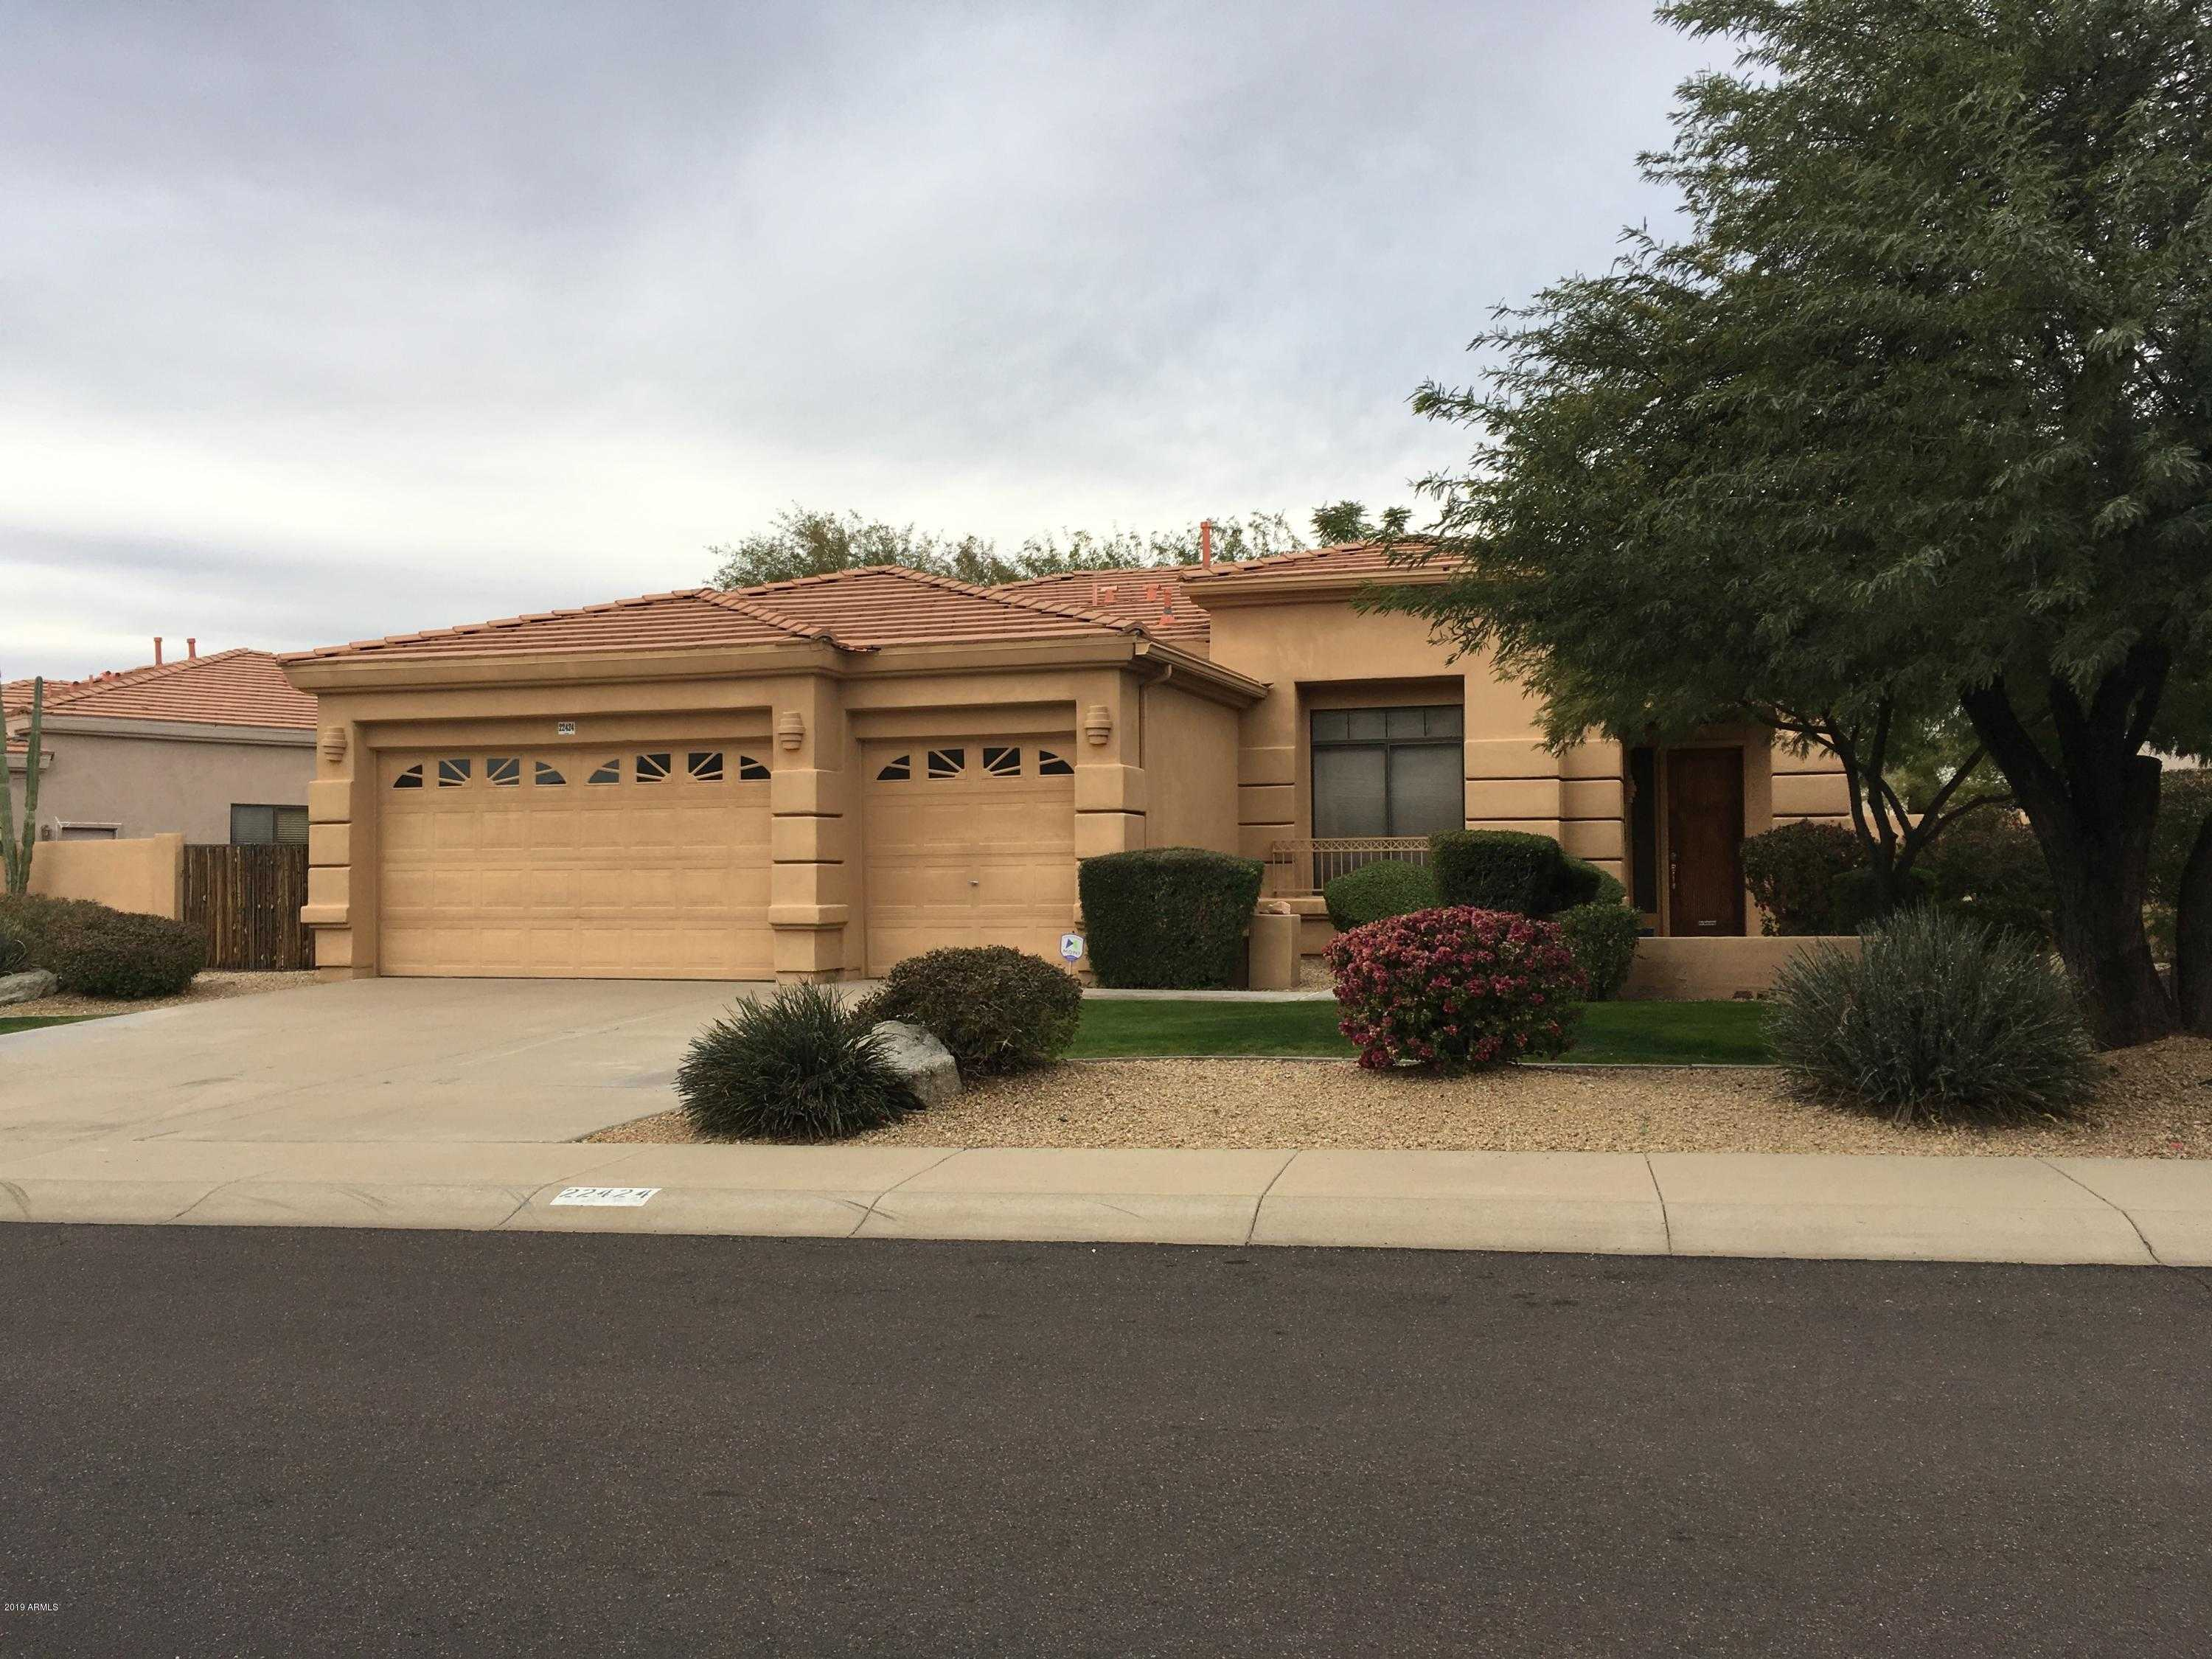 $2,300 - 3Br/2Ba - Home for Sale in Desert Ridge Parcel 4.17, Phoenix